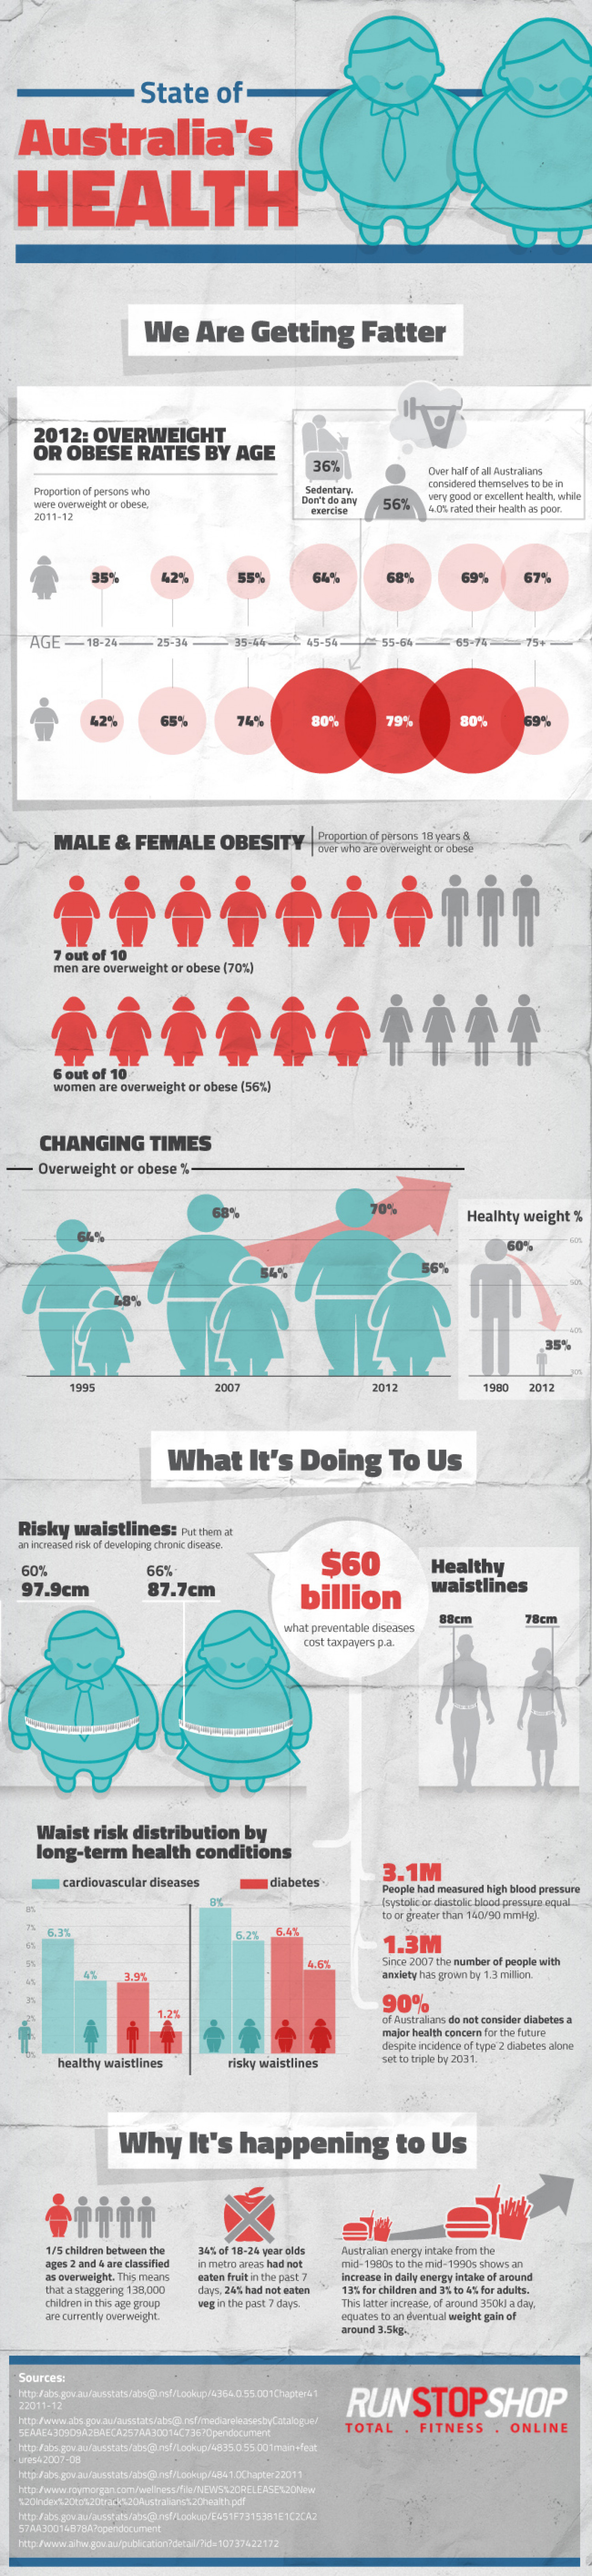 State of Australia's Health Infographic